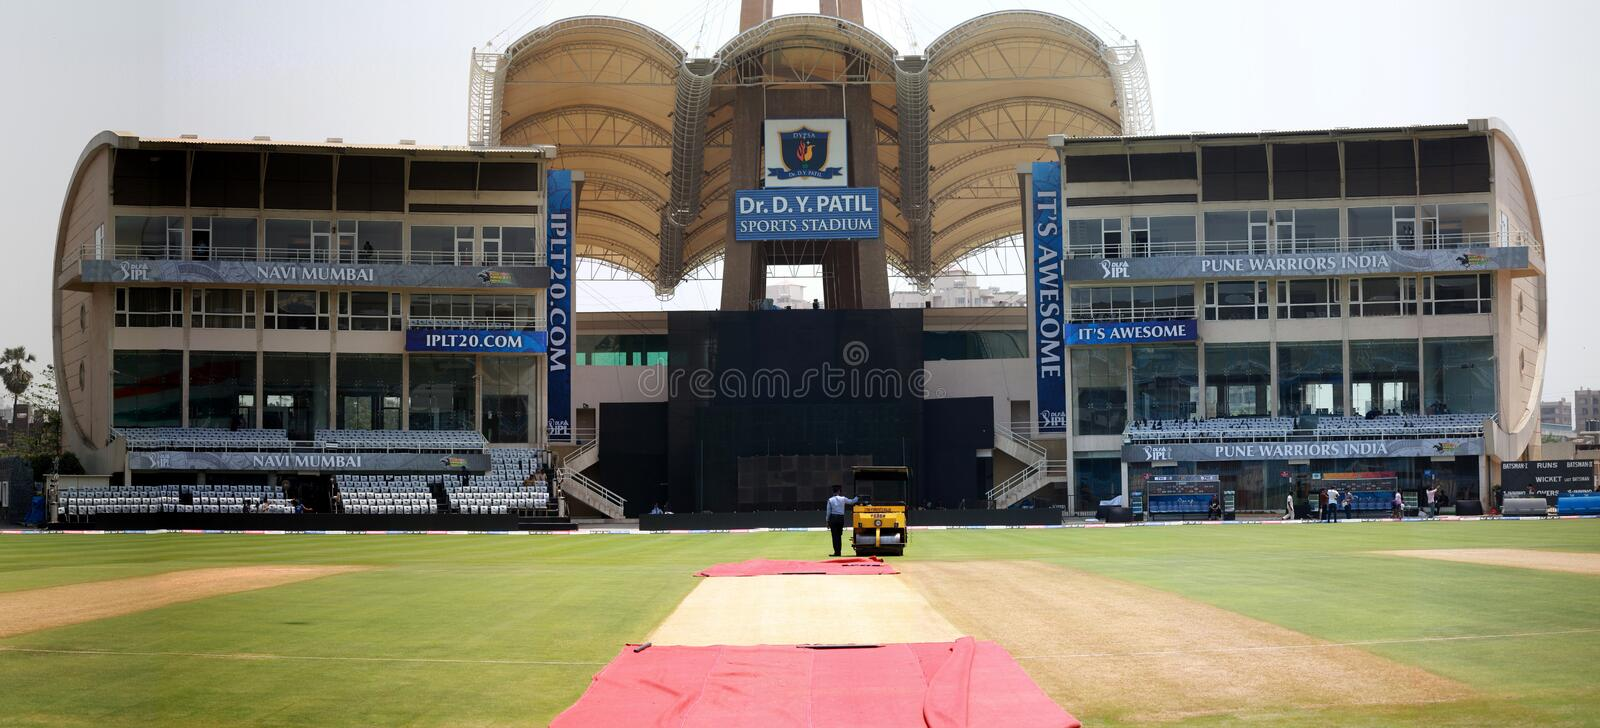 krykieta dy patil stadium obraz royalty free